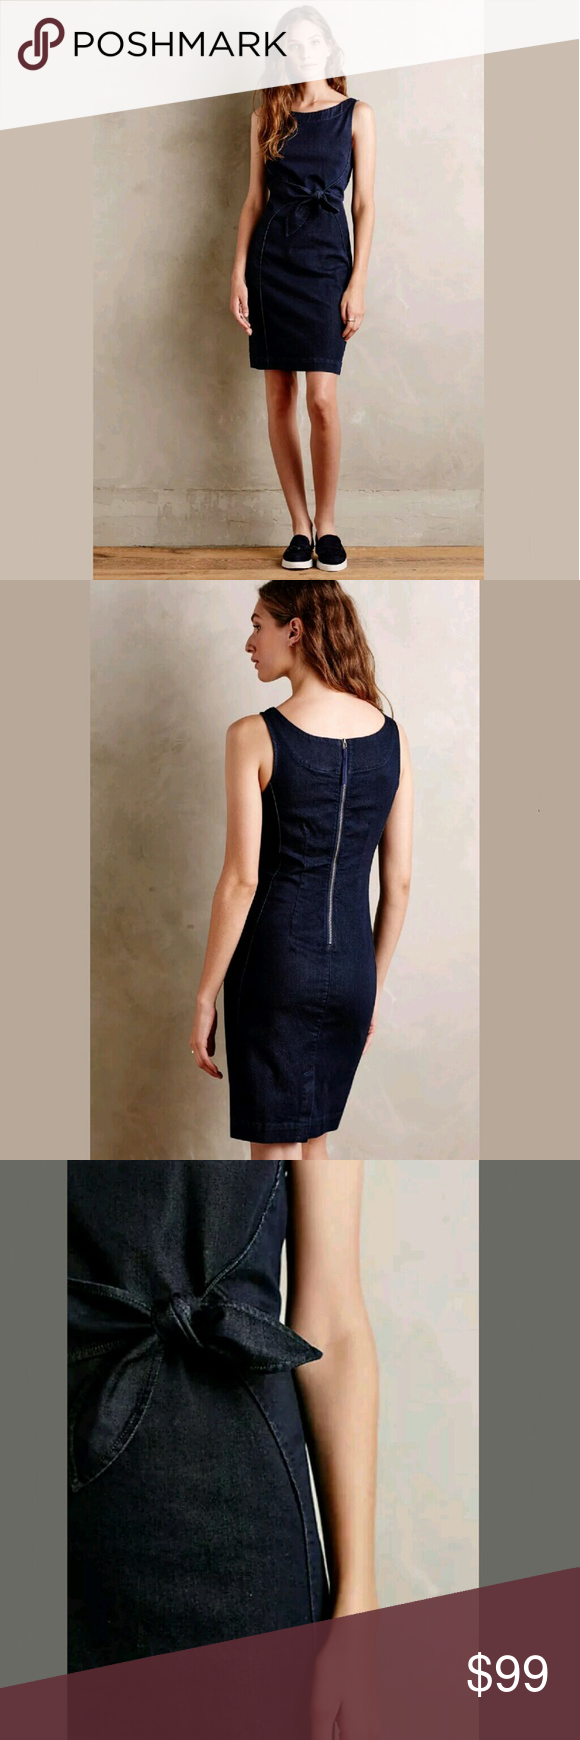 c2881d9bce Anthropologie Denim Sheath Dress Size S This is the beautiful Anthropologie  Dress known as the Anthropologie